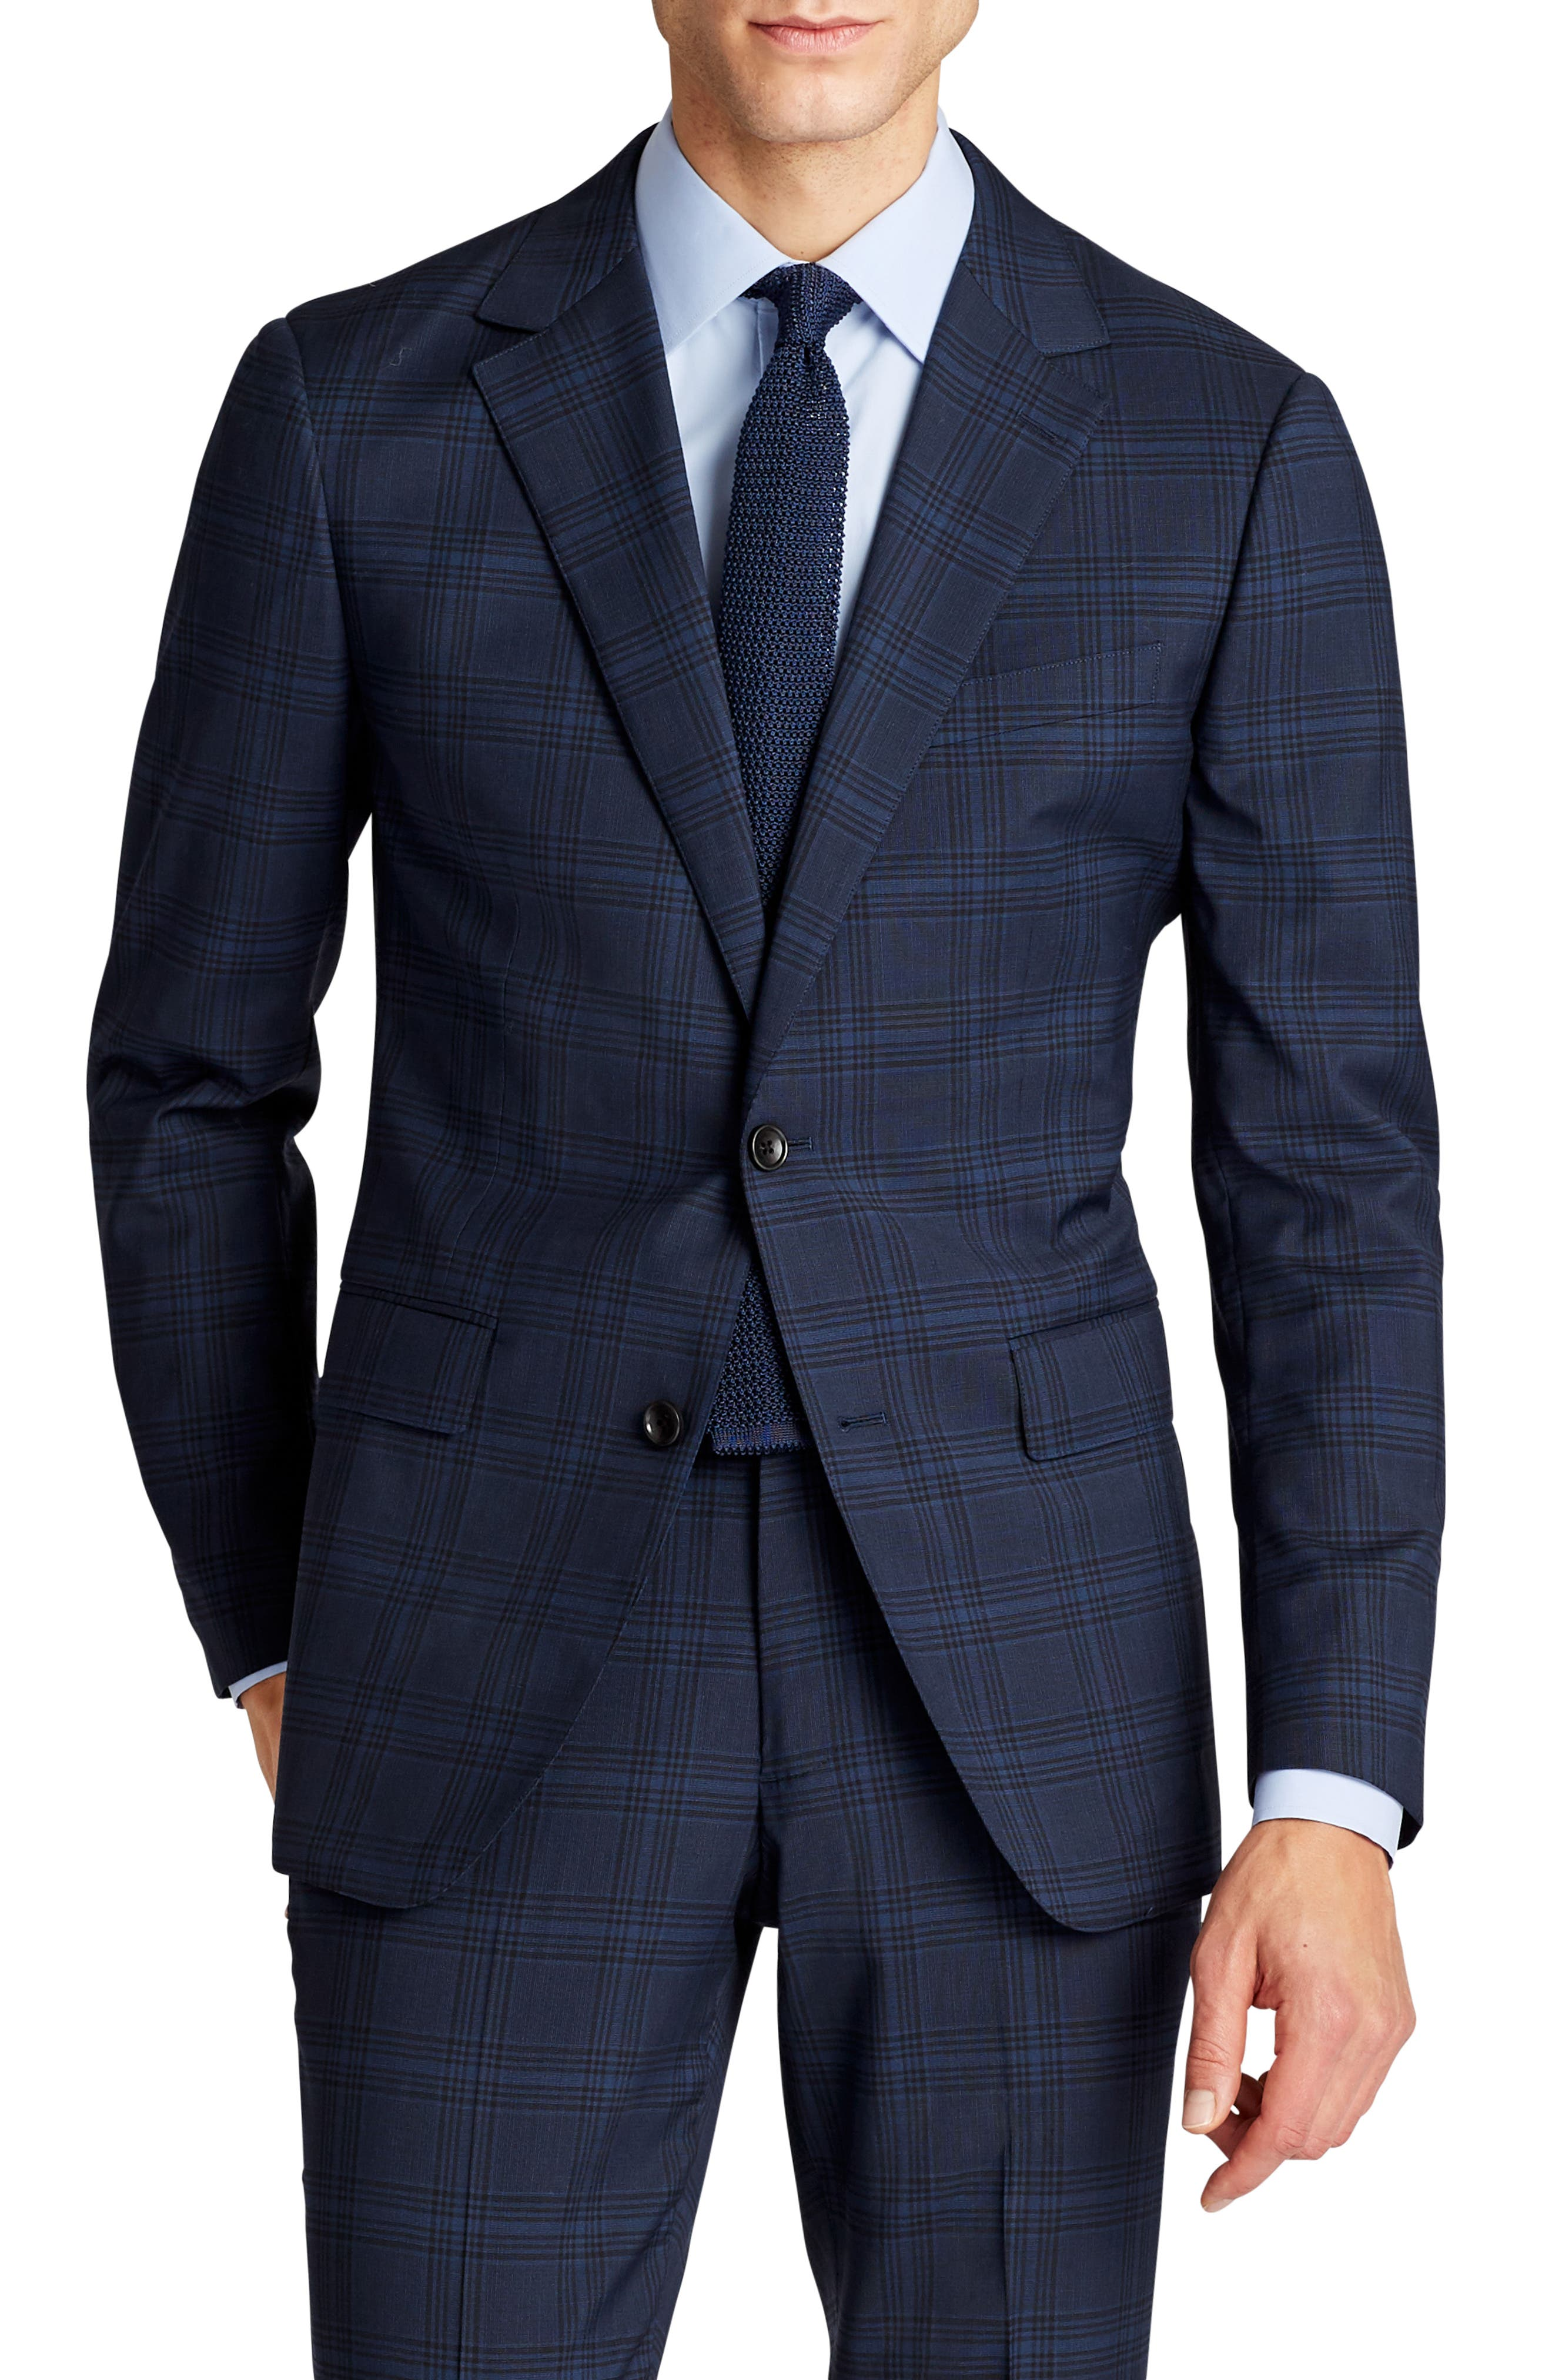 Alternate Image 1 Selected - Bonobos Jetsetter Trim Fit Stretch Plaid Wool Blend Suit Jacket